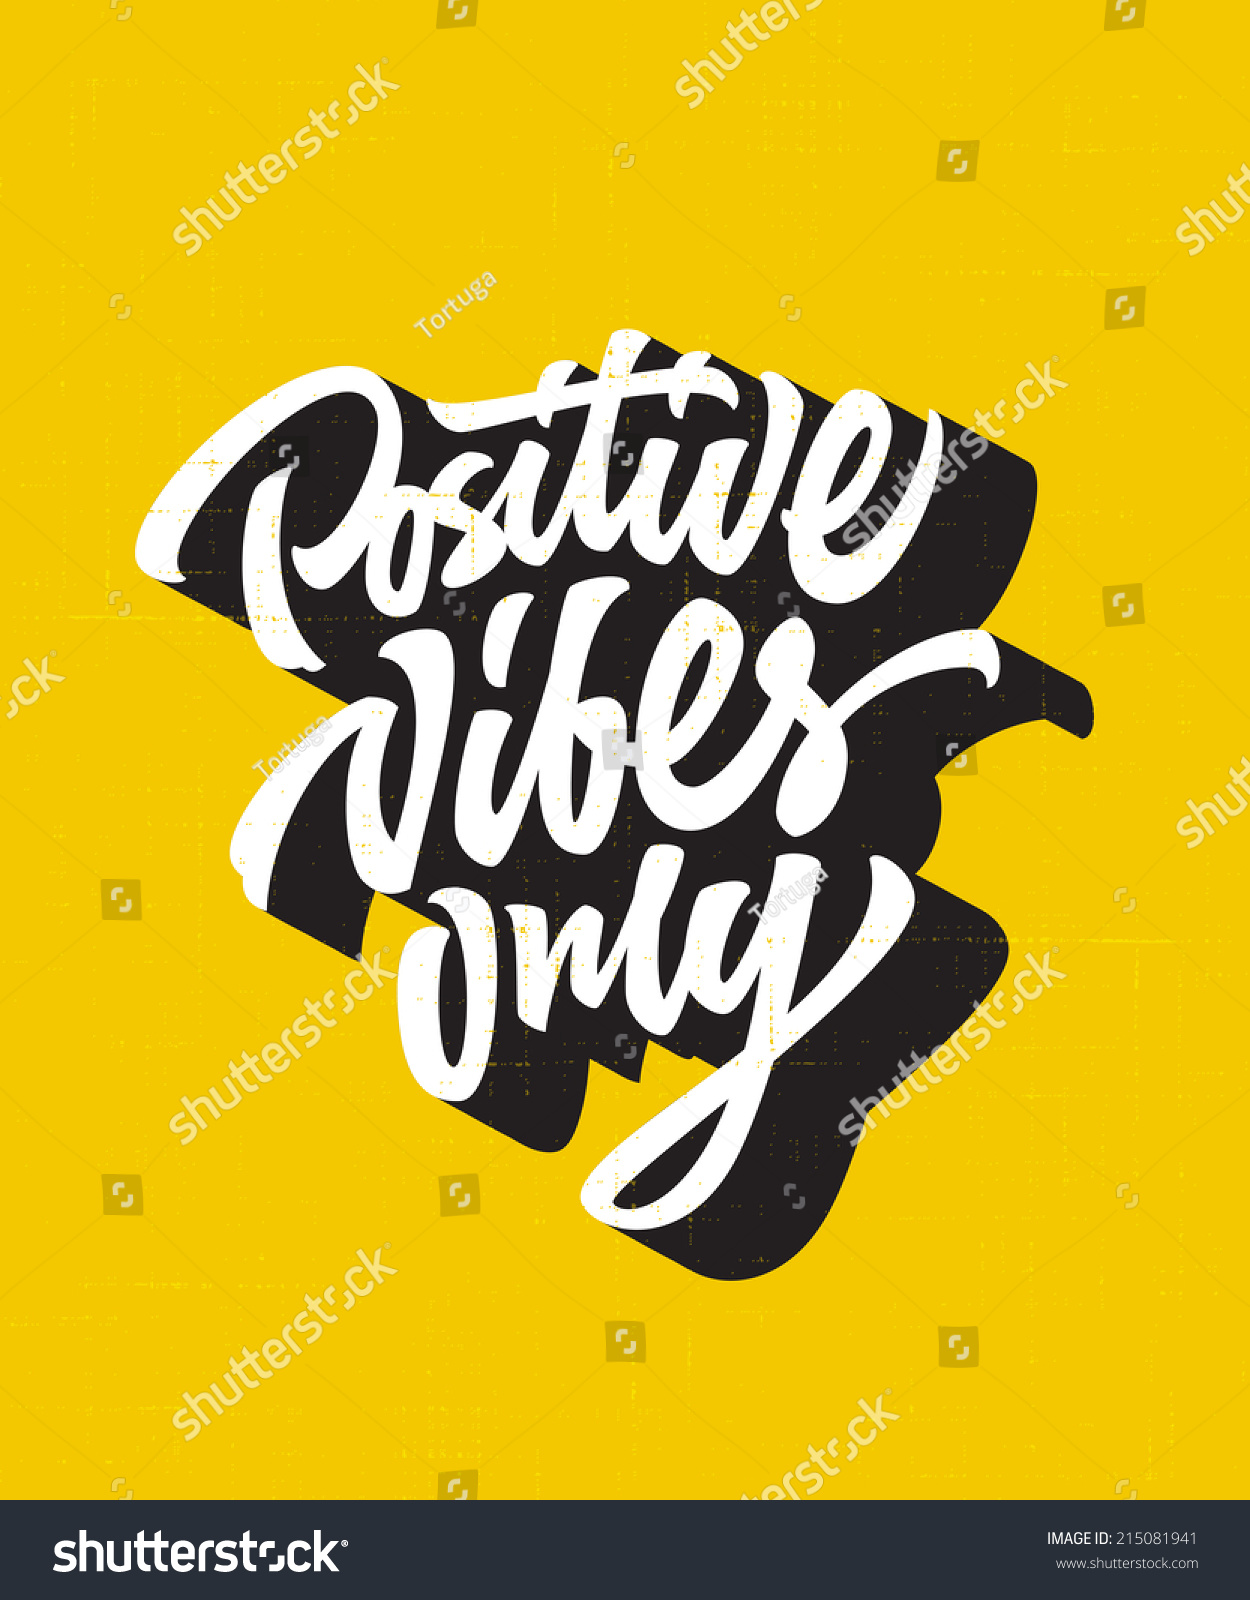 Shirt design and print